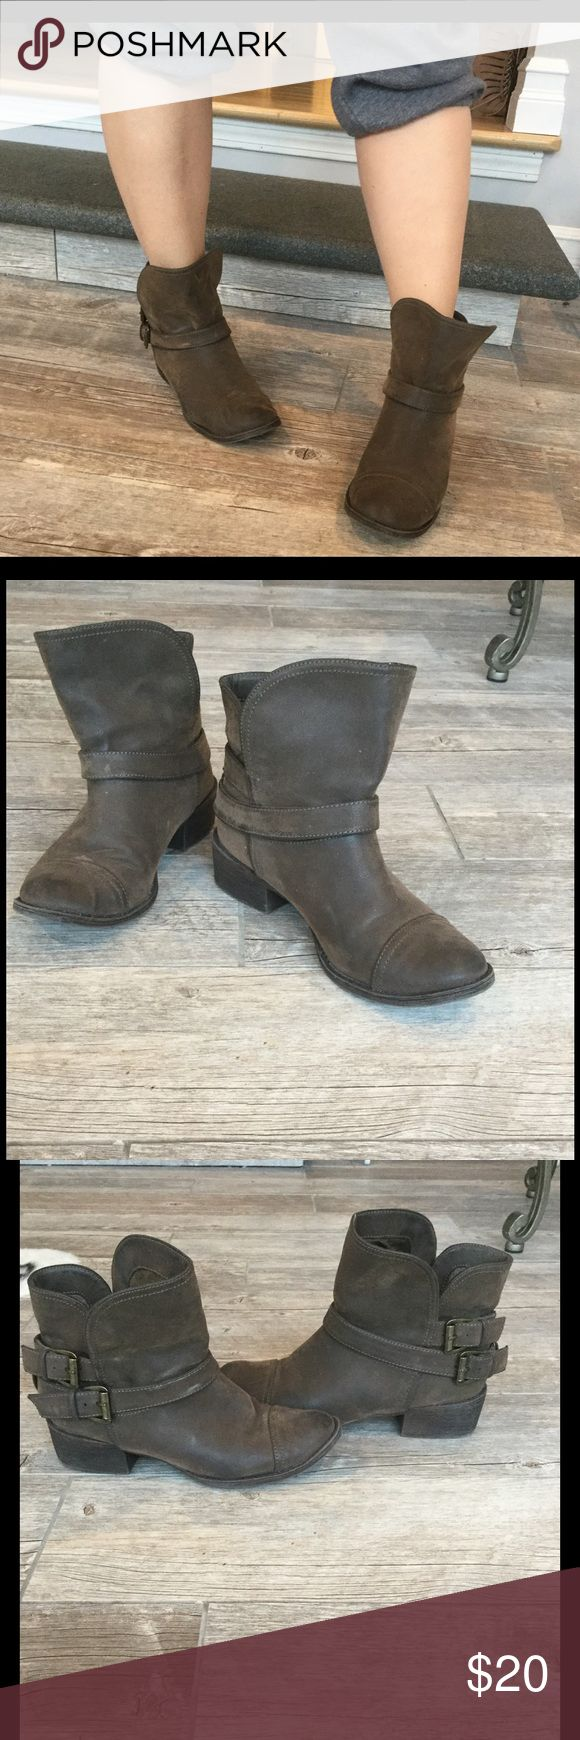 Rocket Dog Buckle Ankle Boots Very comfortable barley used Rocket Dog ankle boots in excellent condition size 6 1/2 Rocket Dog Shoes Ankle Boots & Booties